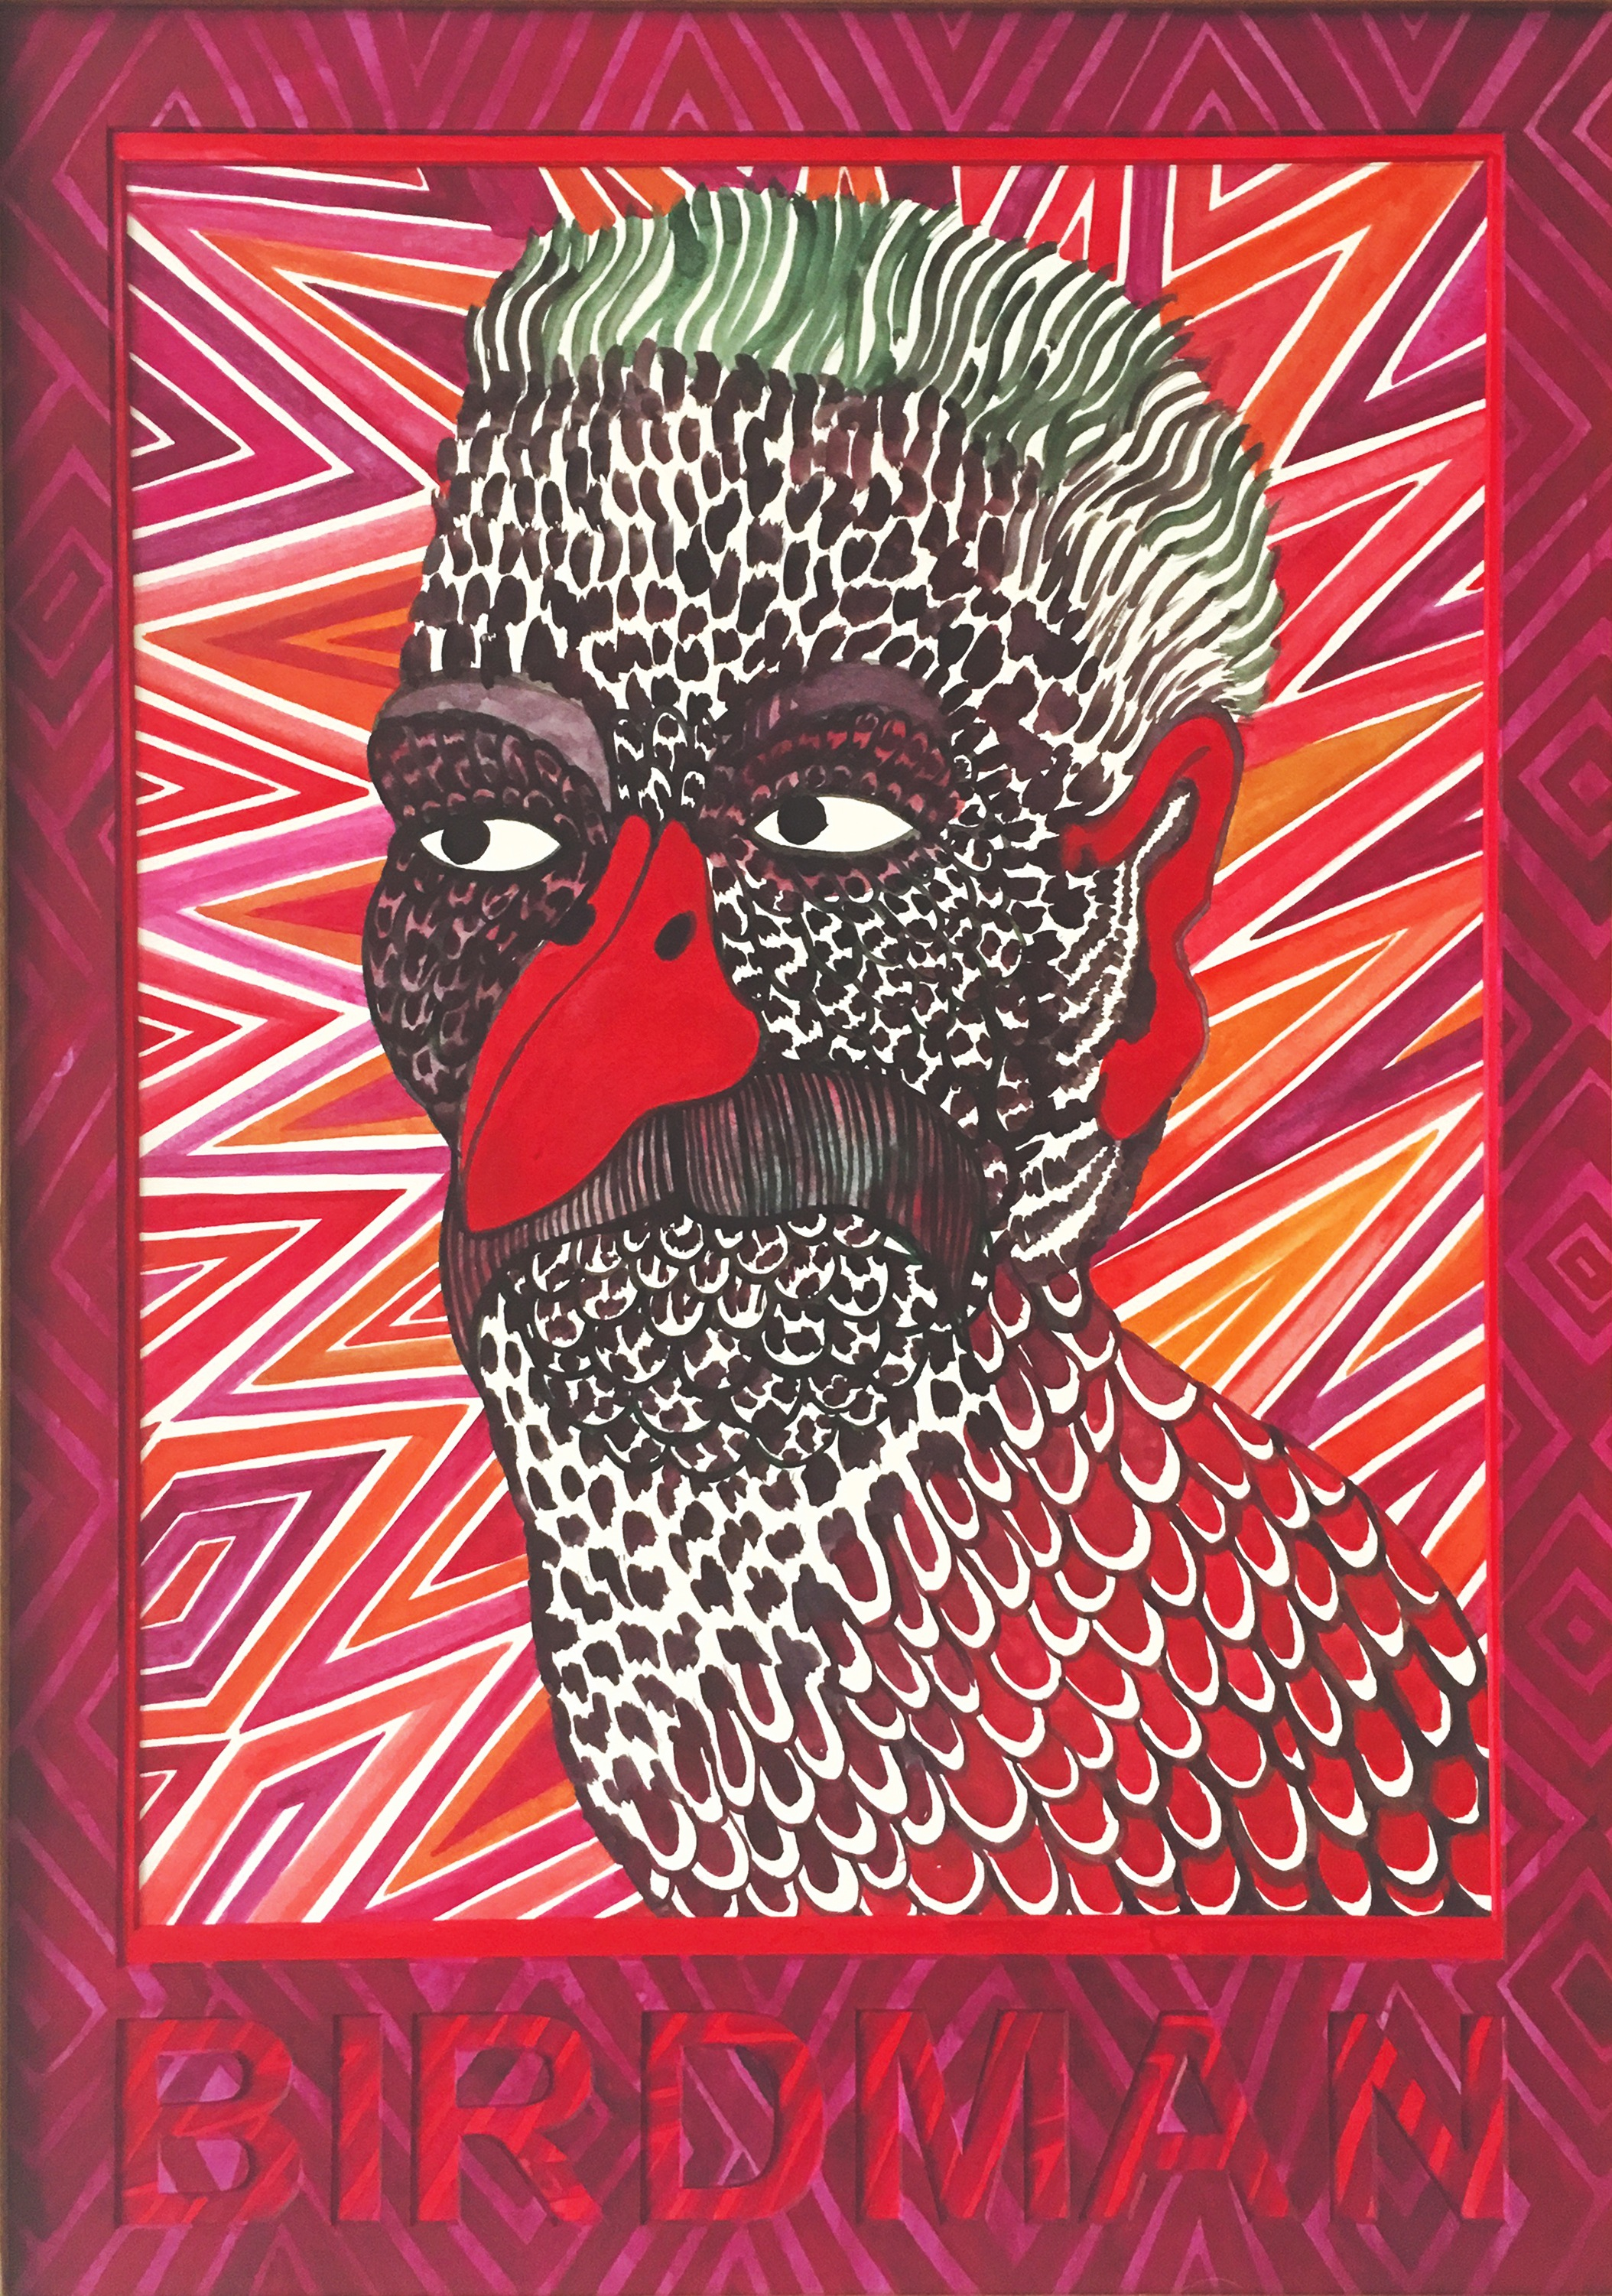 CECILIA FOGELBERG  BIRDMAN (magenta/red) , 2019 gouache and watercolour on 100% cotton rag board, framed 61 x 43 cm